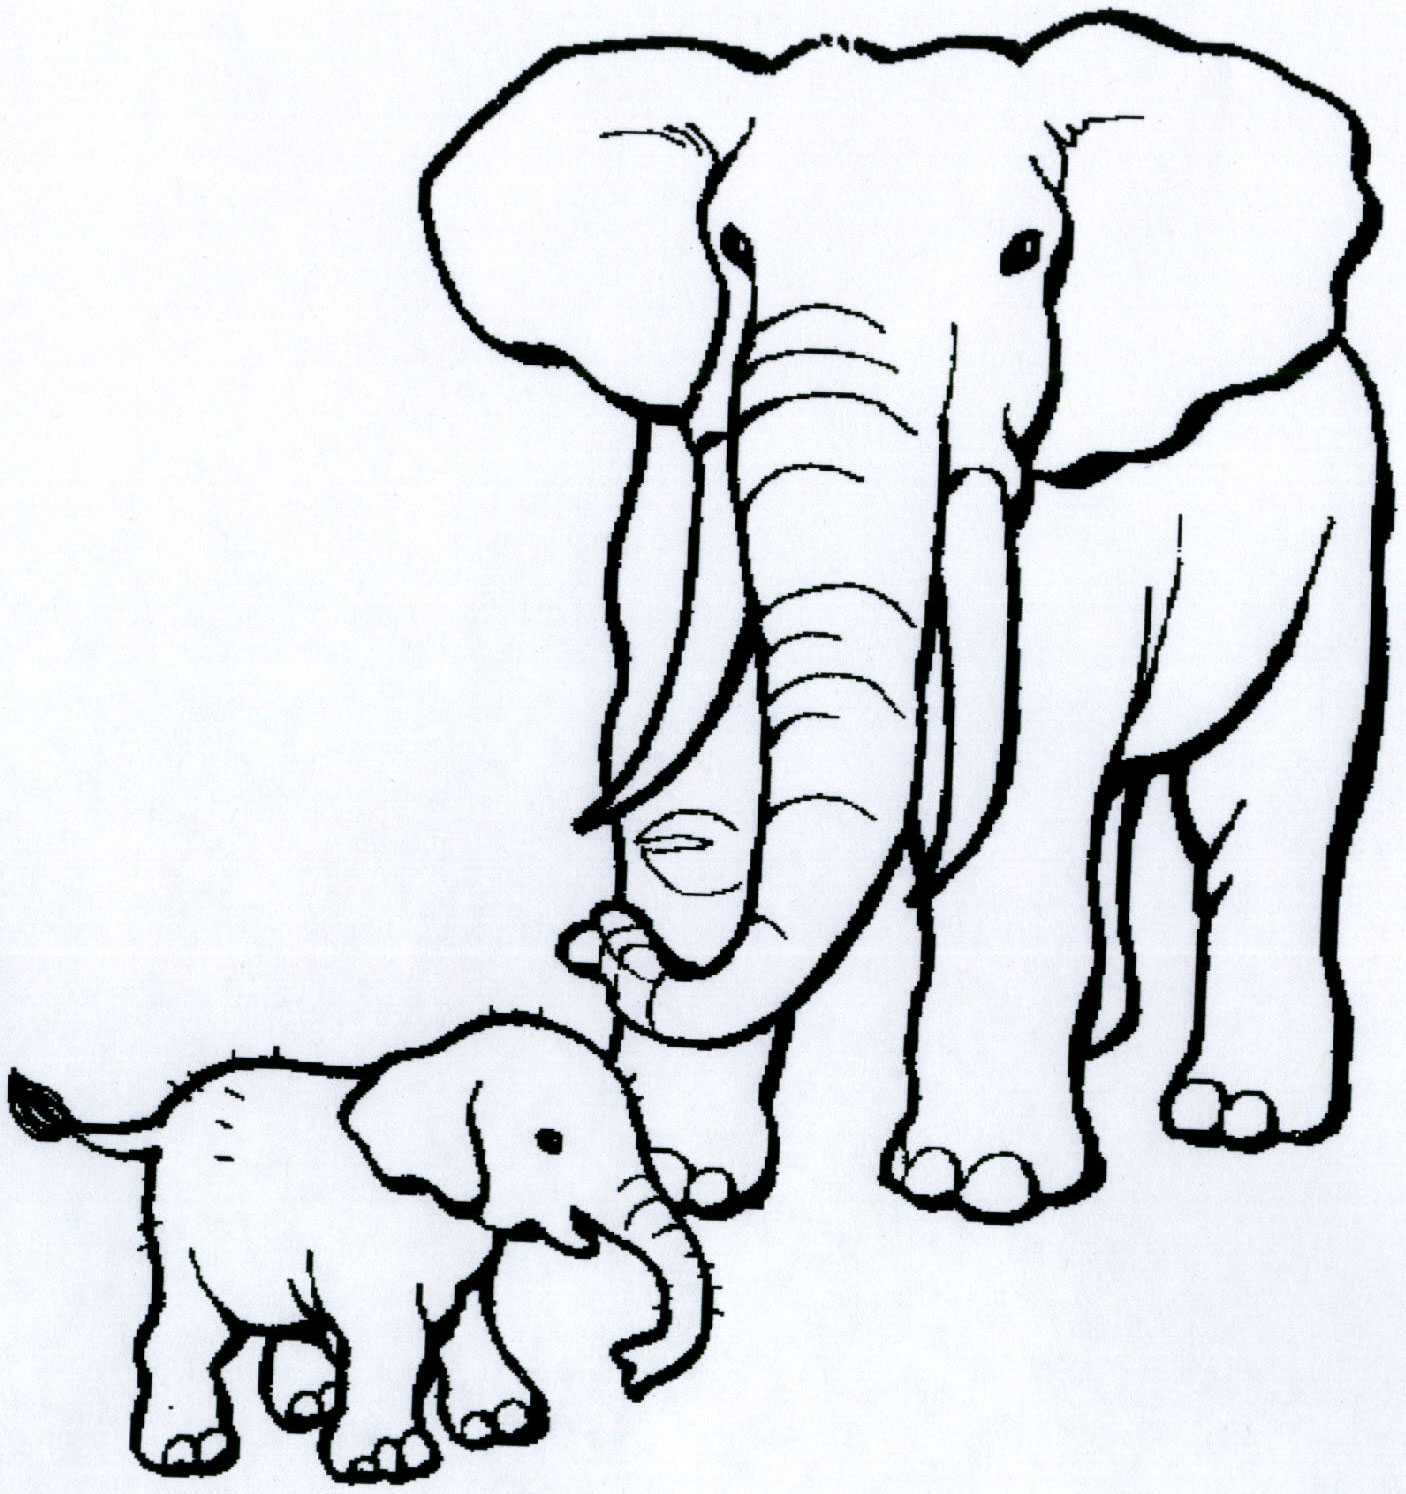 700x580 African Animal Template 1406x1494 Animals Coloring Pages Click On Each Image To Get